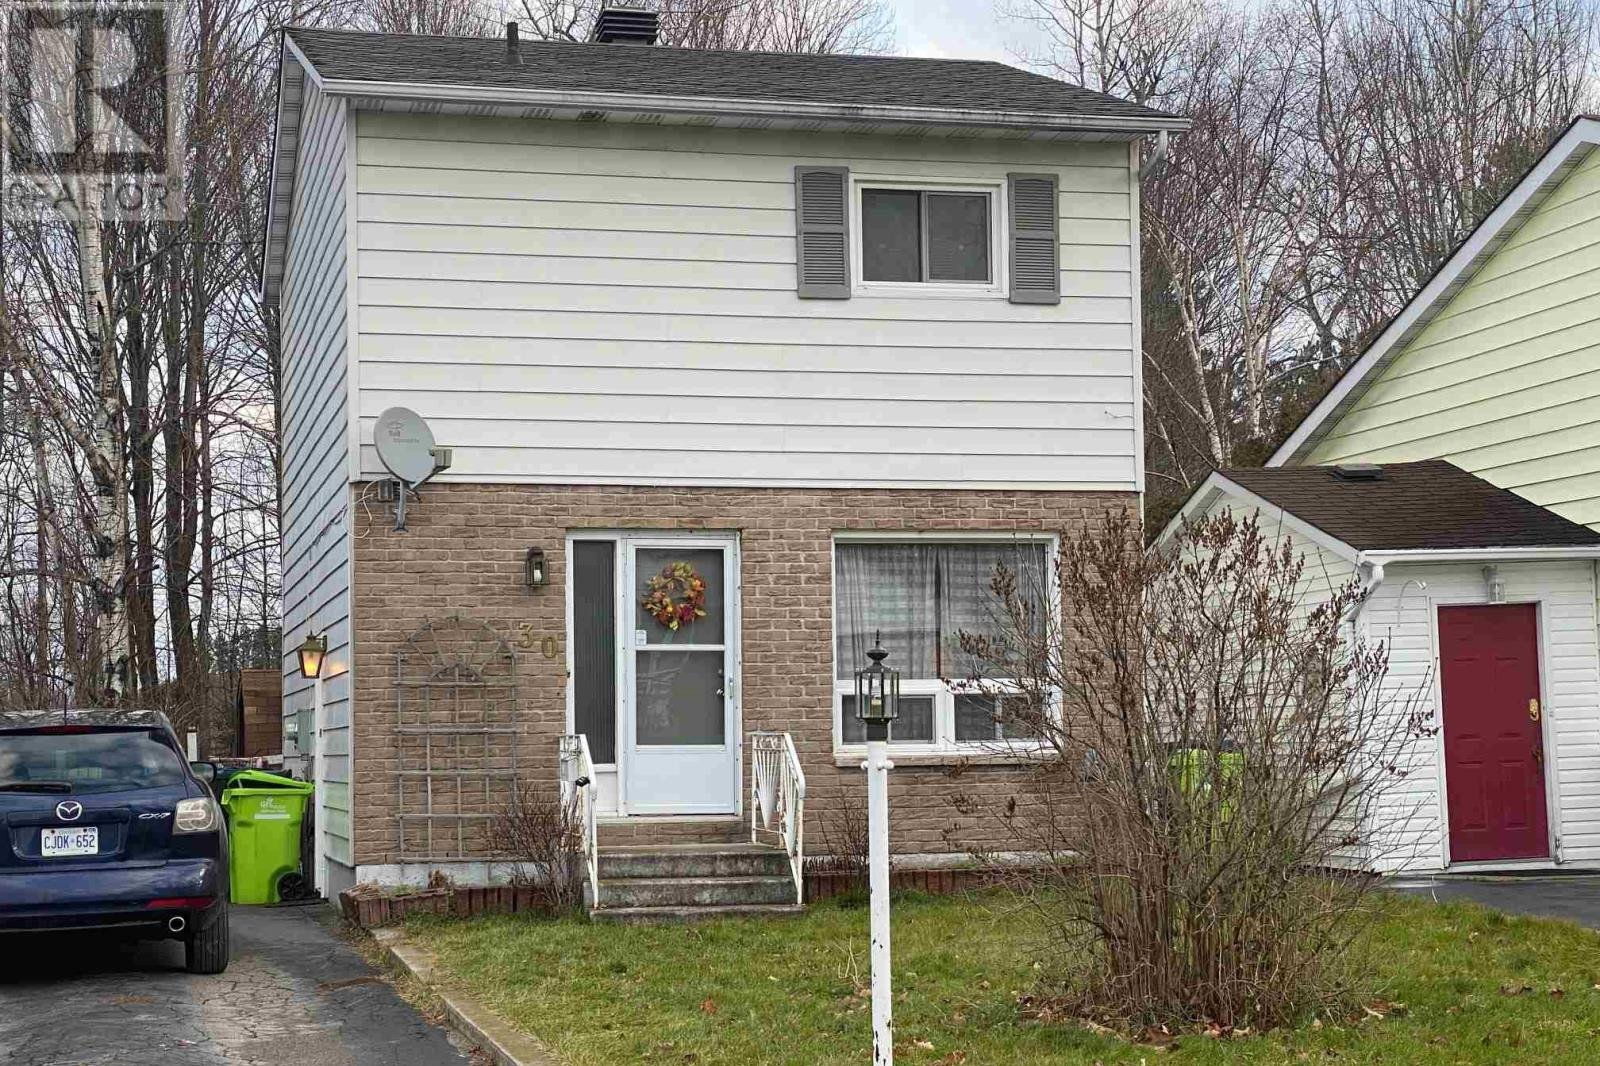 House for sale at 30 Muriel Dr Sault Ste. Marie Ontario - MLS: SM130359